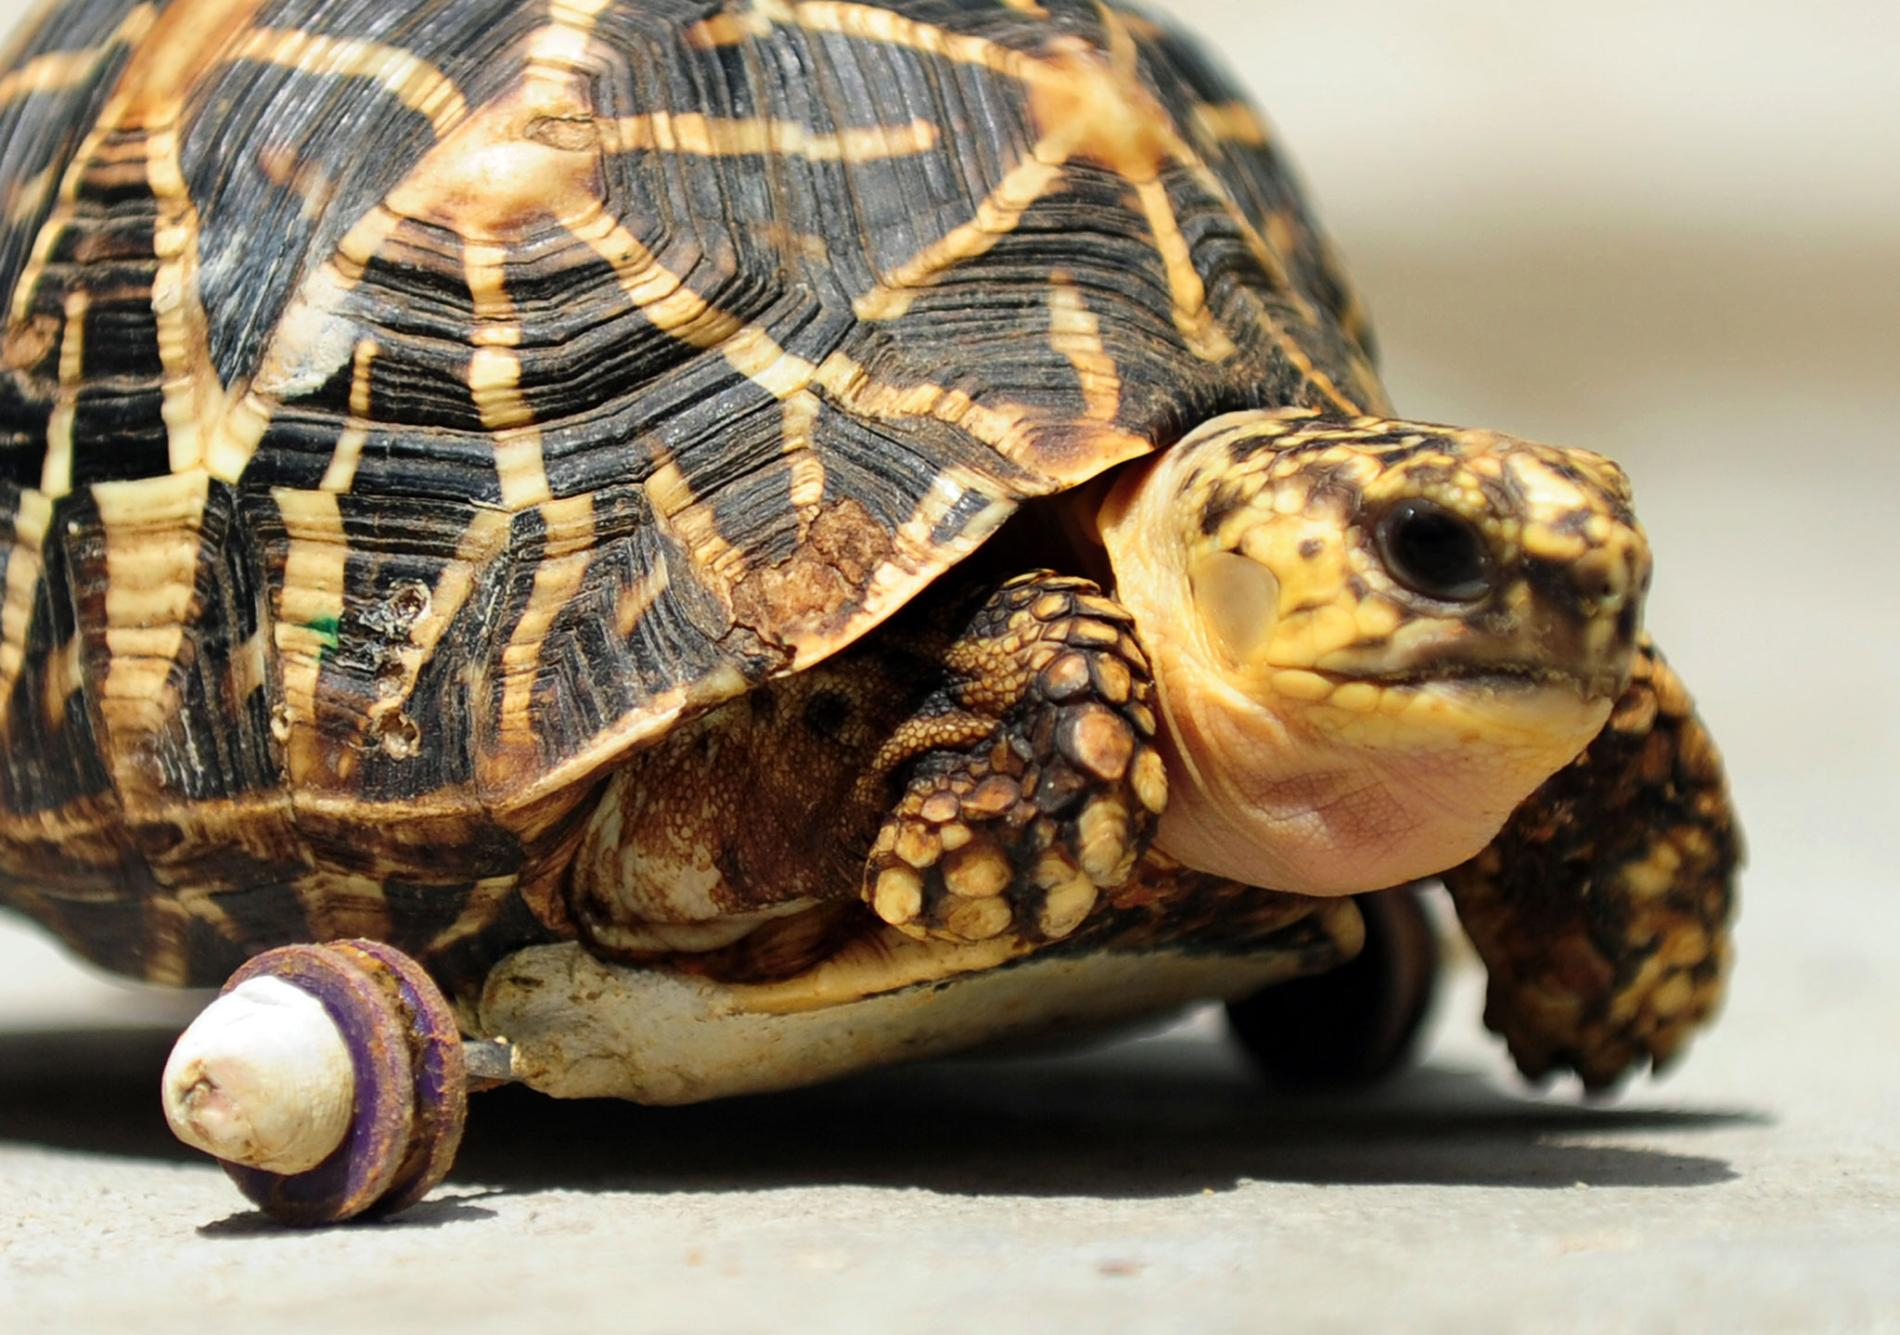 A female tortoise who lost her front right leg has been given her mobility back thanks to a set of wheels affixed to the bottom of her shell.